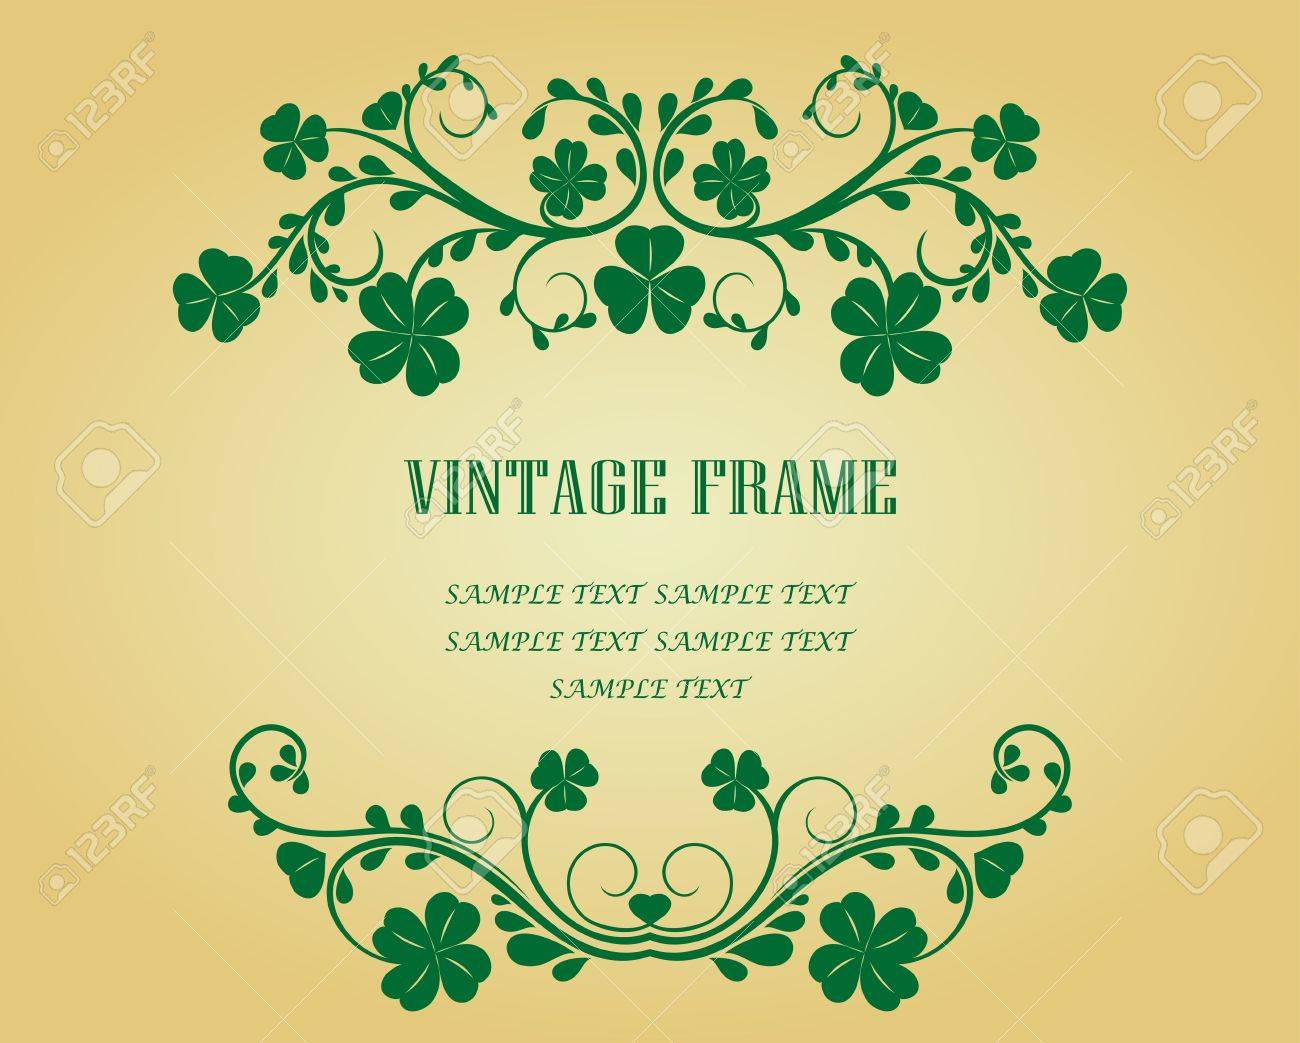 Vintage frame with clover for design as a background Stock Vector - 6554219